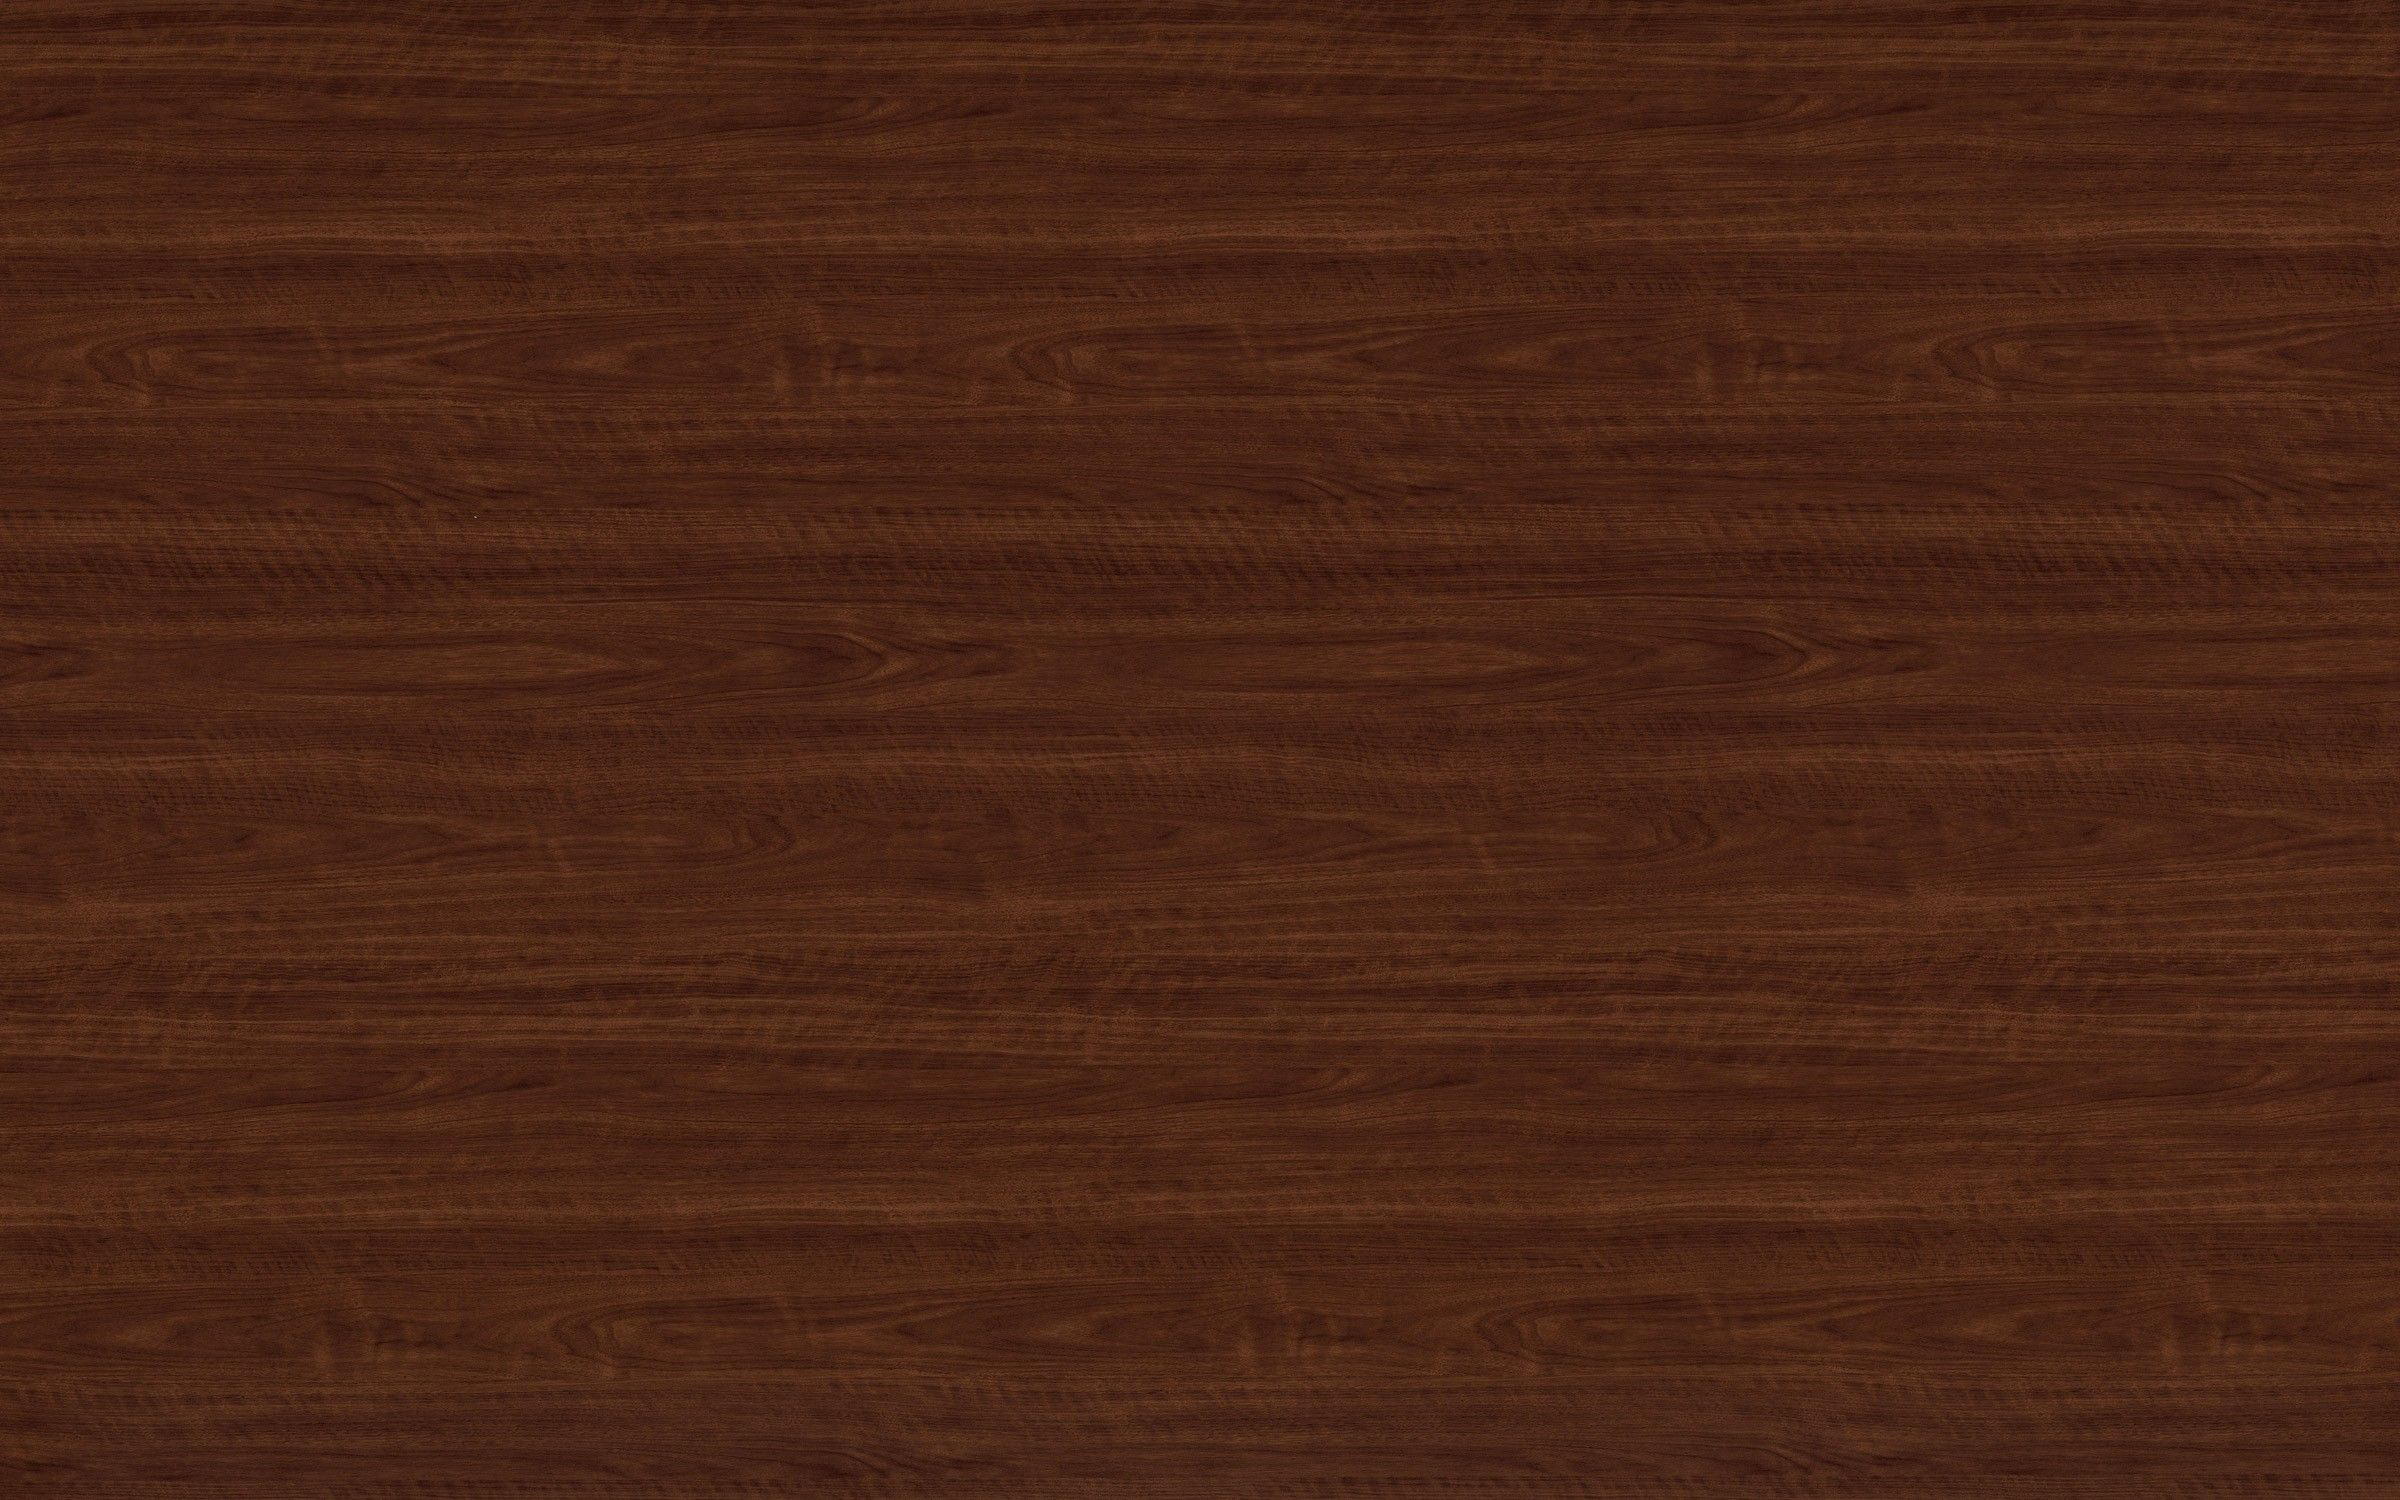 Laminate Hampton Walnut 7959 Wood grain texture